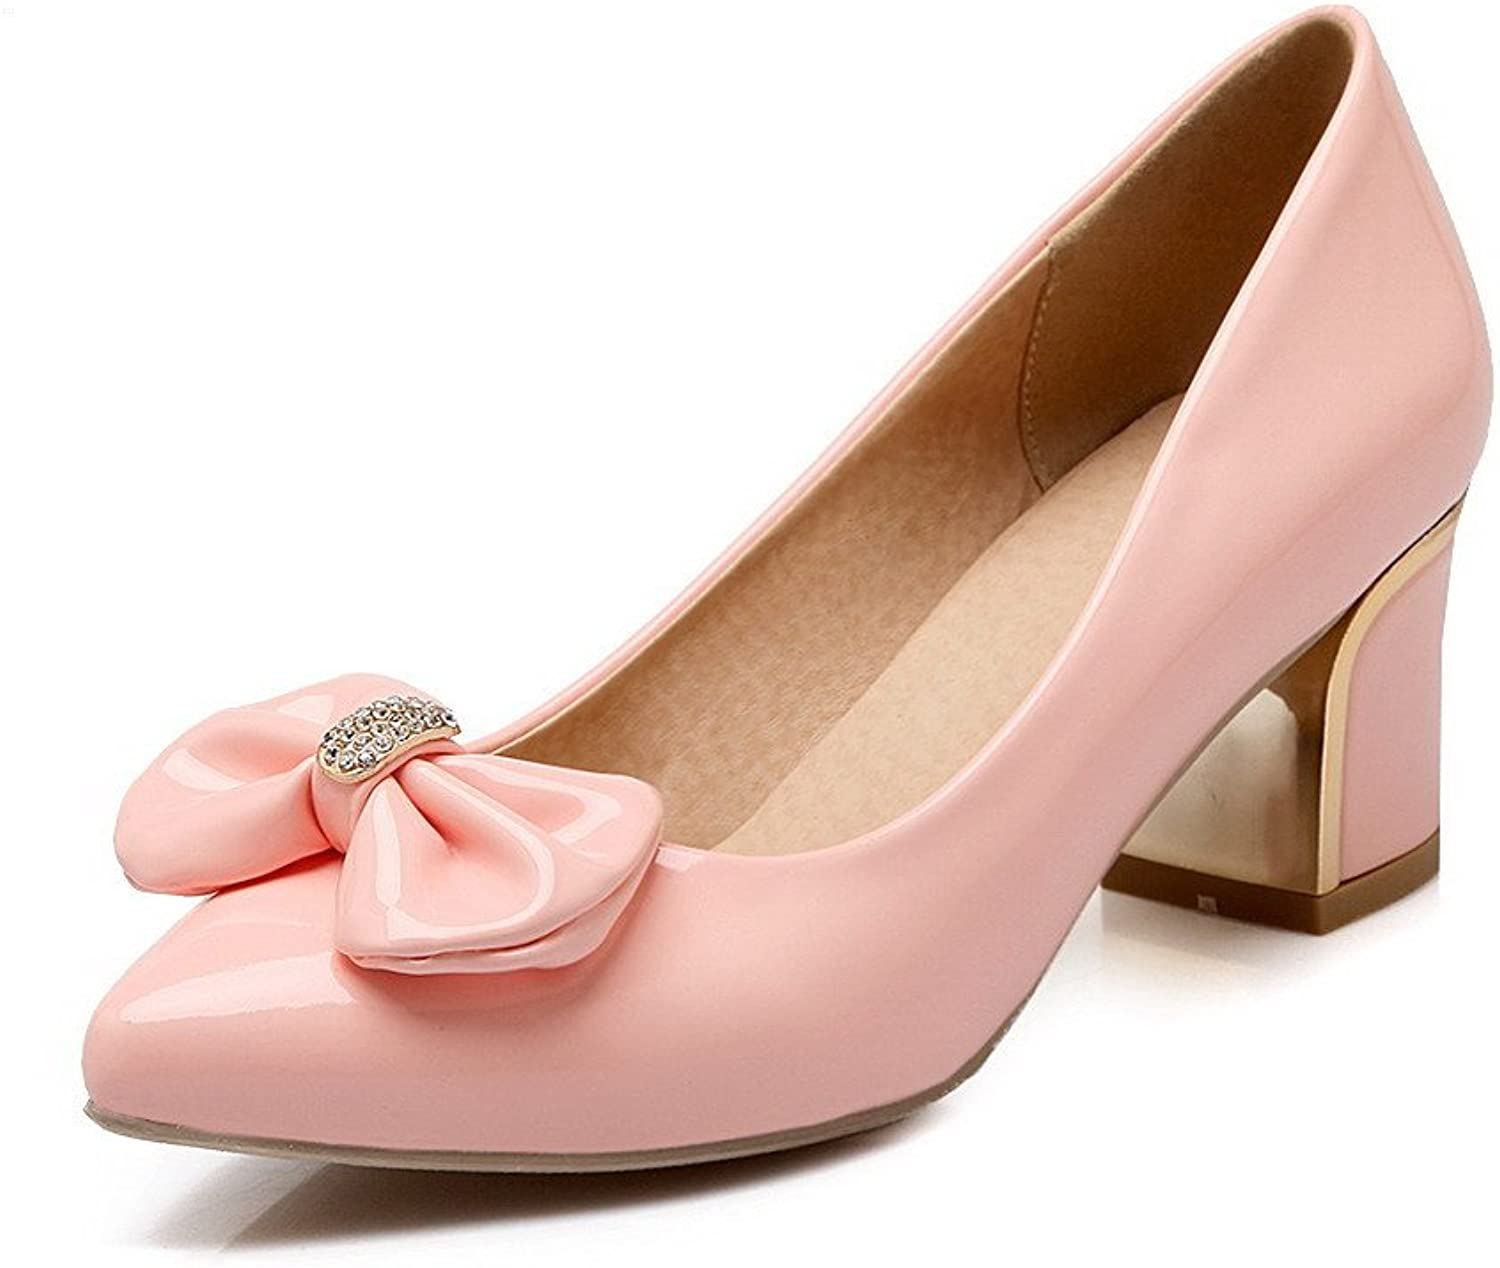 WeenFashion Women's Pull-on Kitten-Heels PU Solid Pointed Closed Toe Pumps-shoes